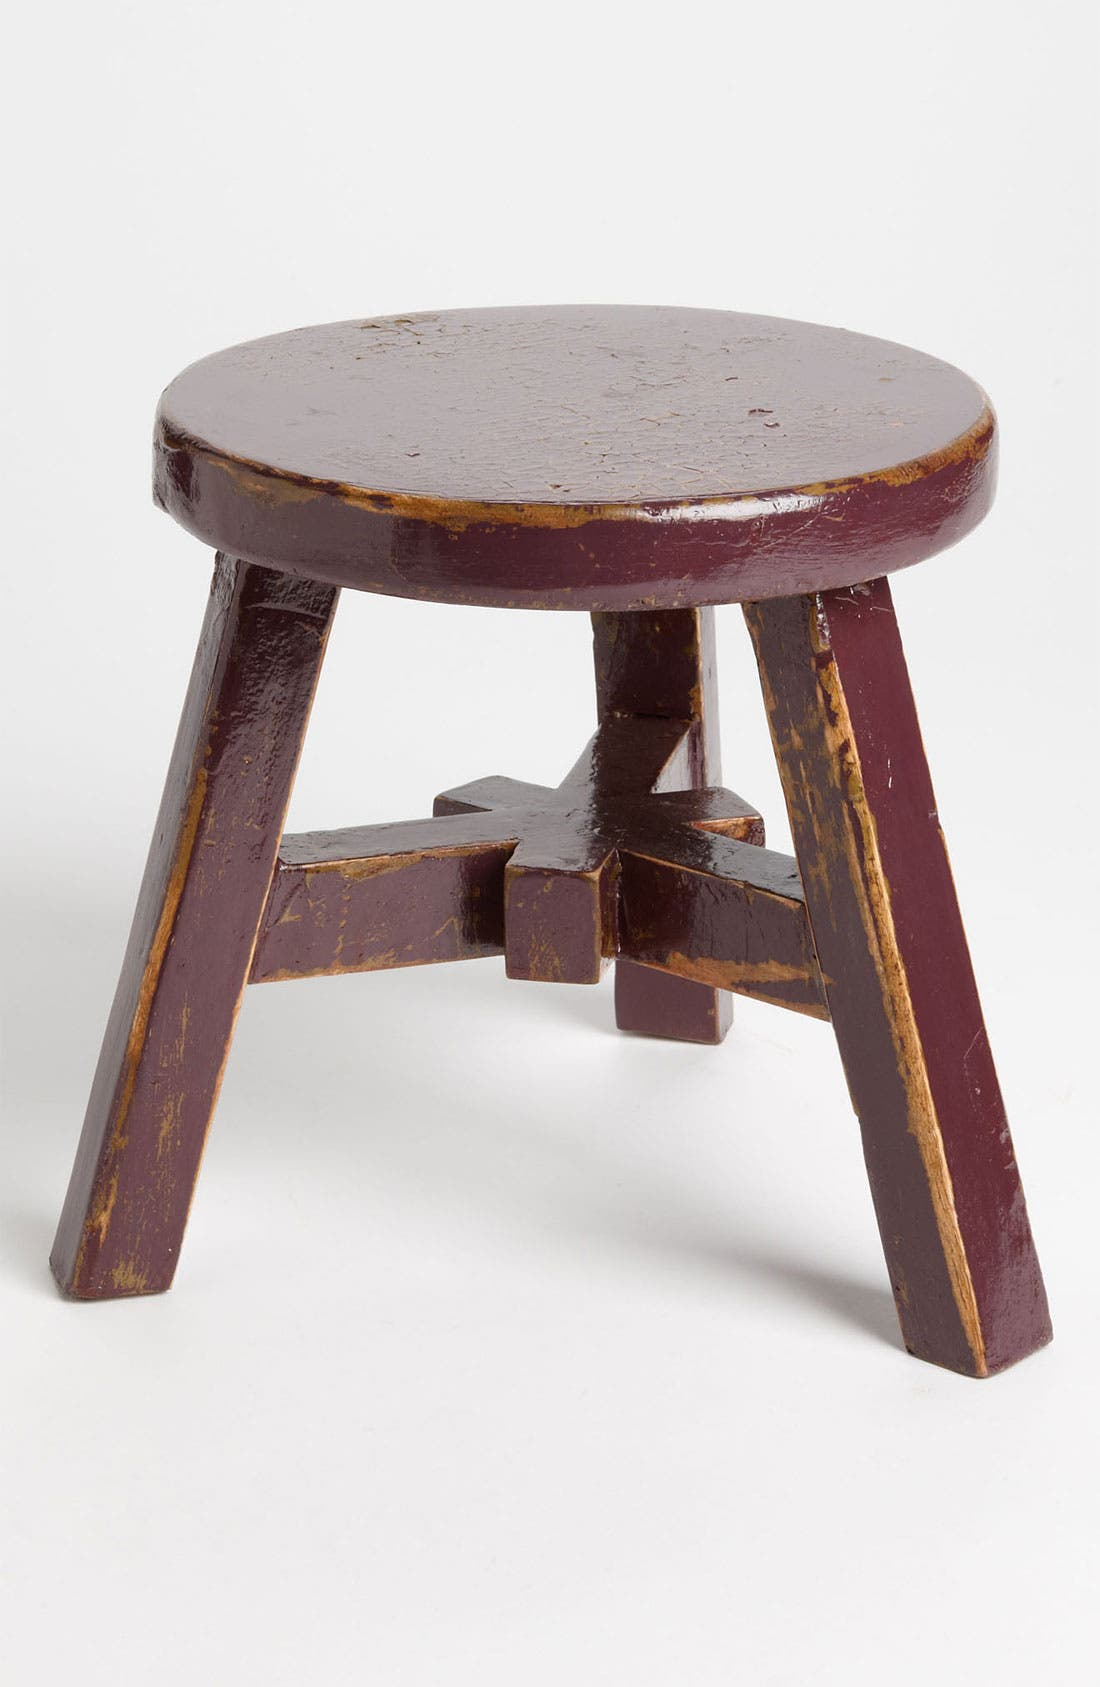 Alternate Image 1 Selected - Small Decorative Wood Stool